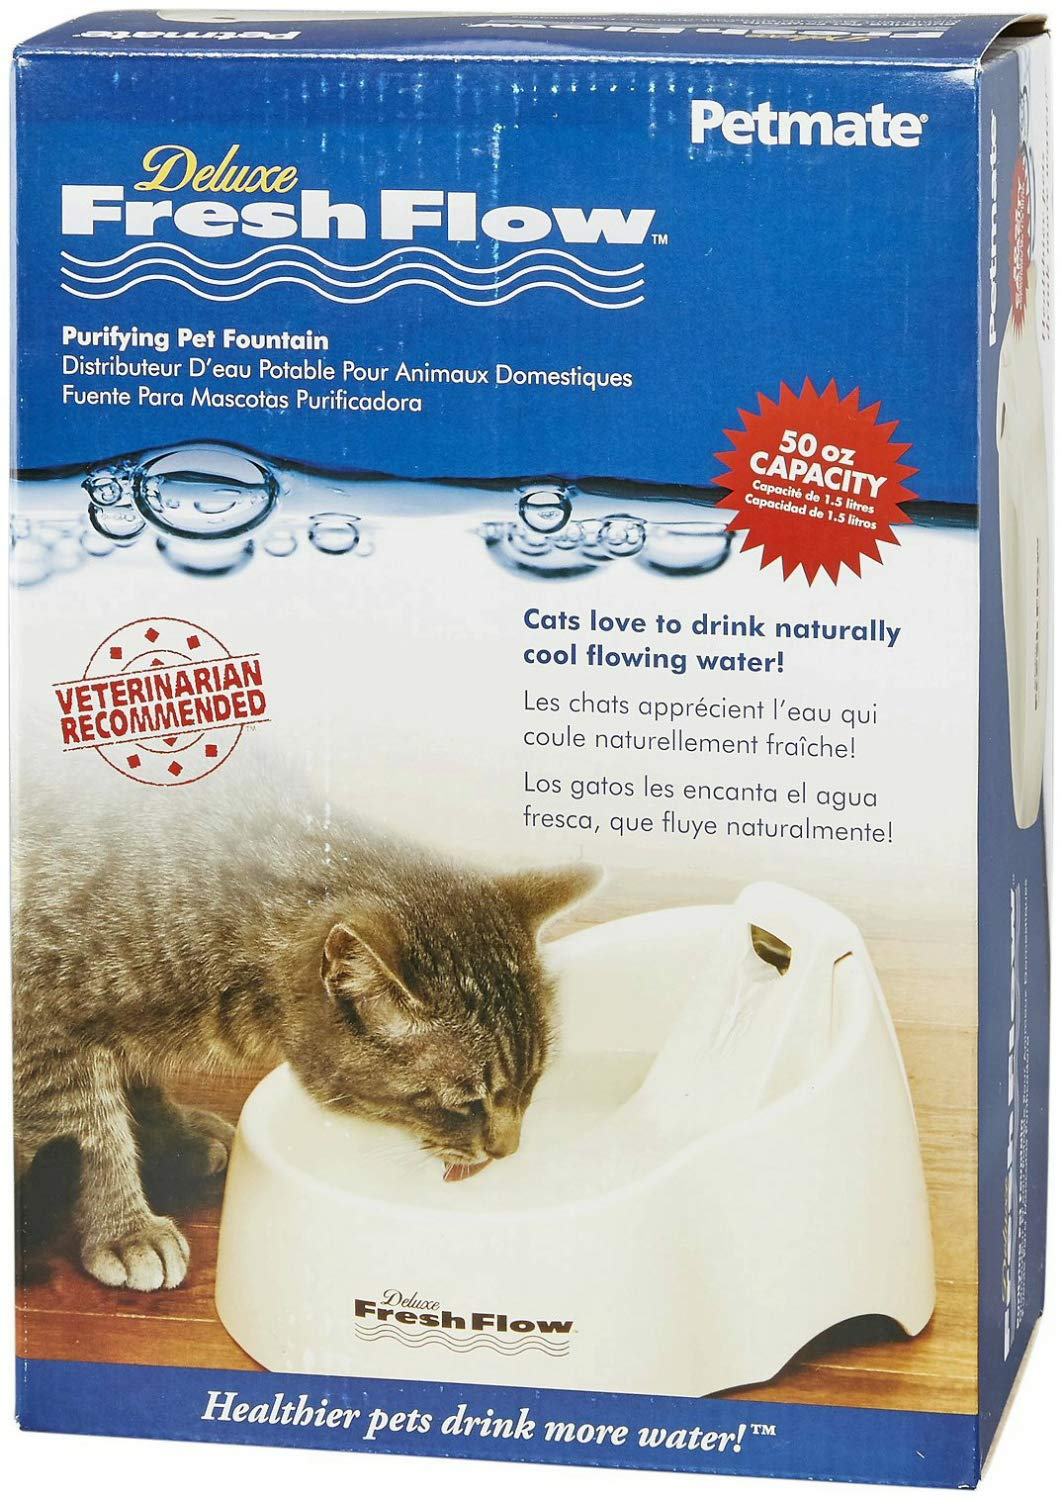 Pet Supplies : Petmate 50oz Fresh Flow Linen Cat Dog Water Fountain x2PK : Pet Self Waterers : Amazon.com